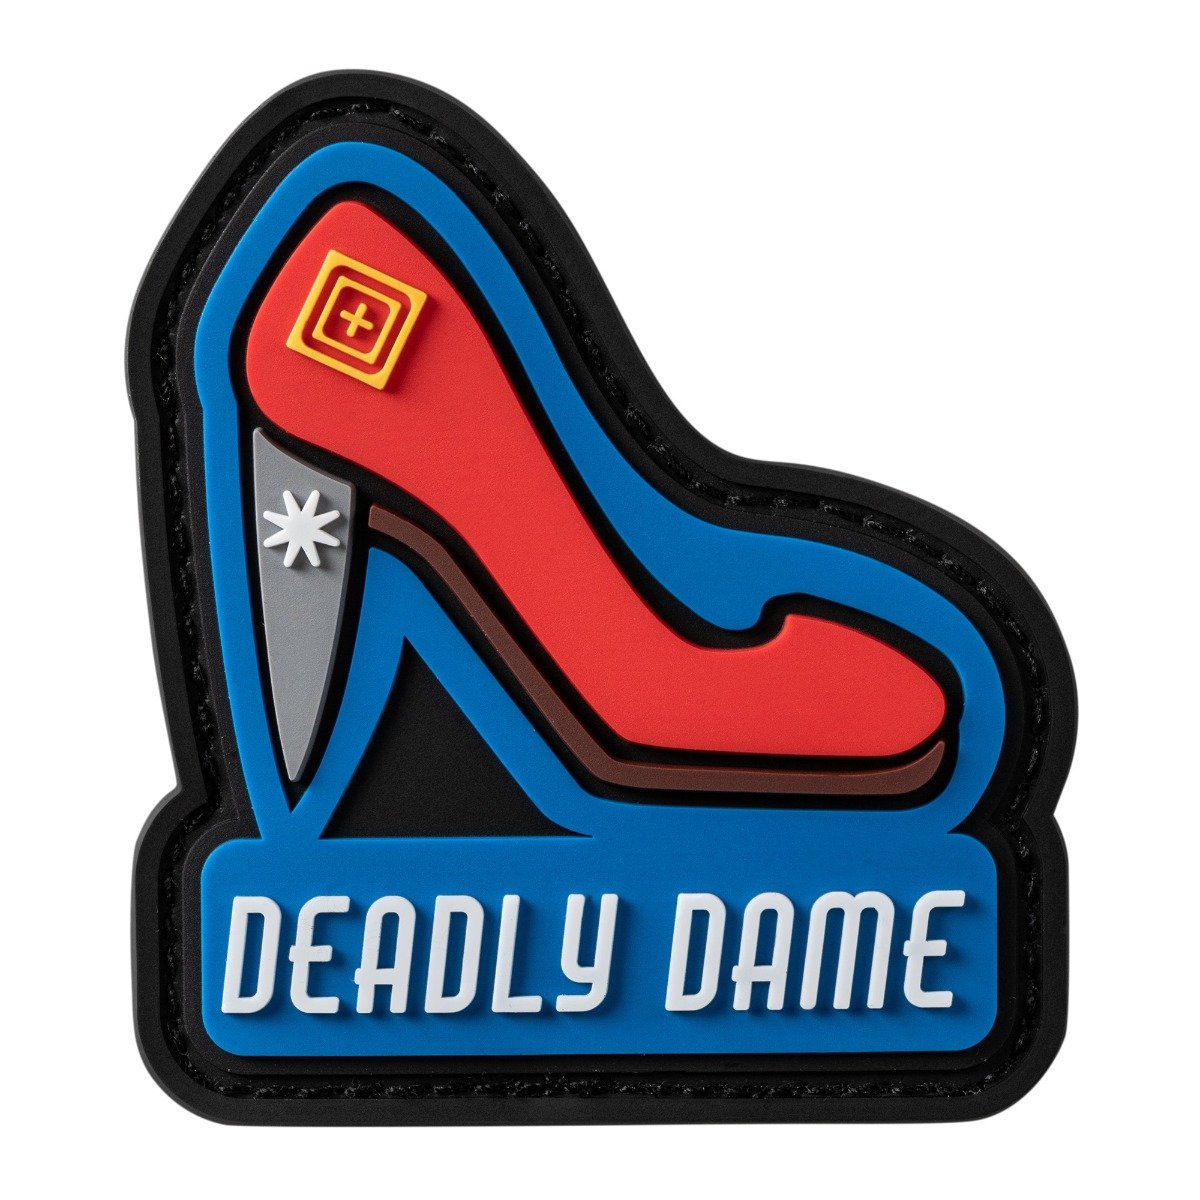 DEADLY DAME PATCH